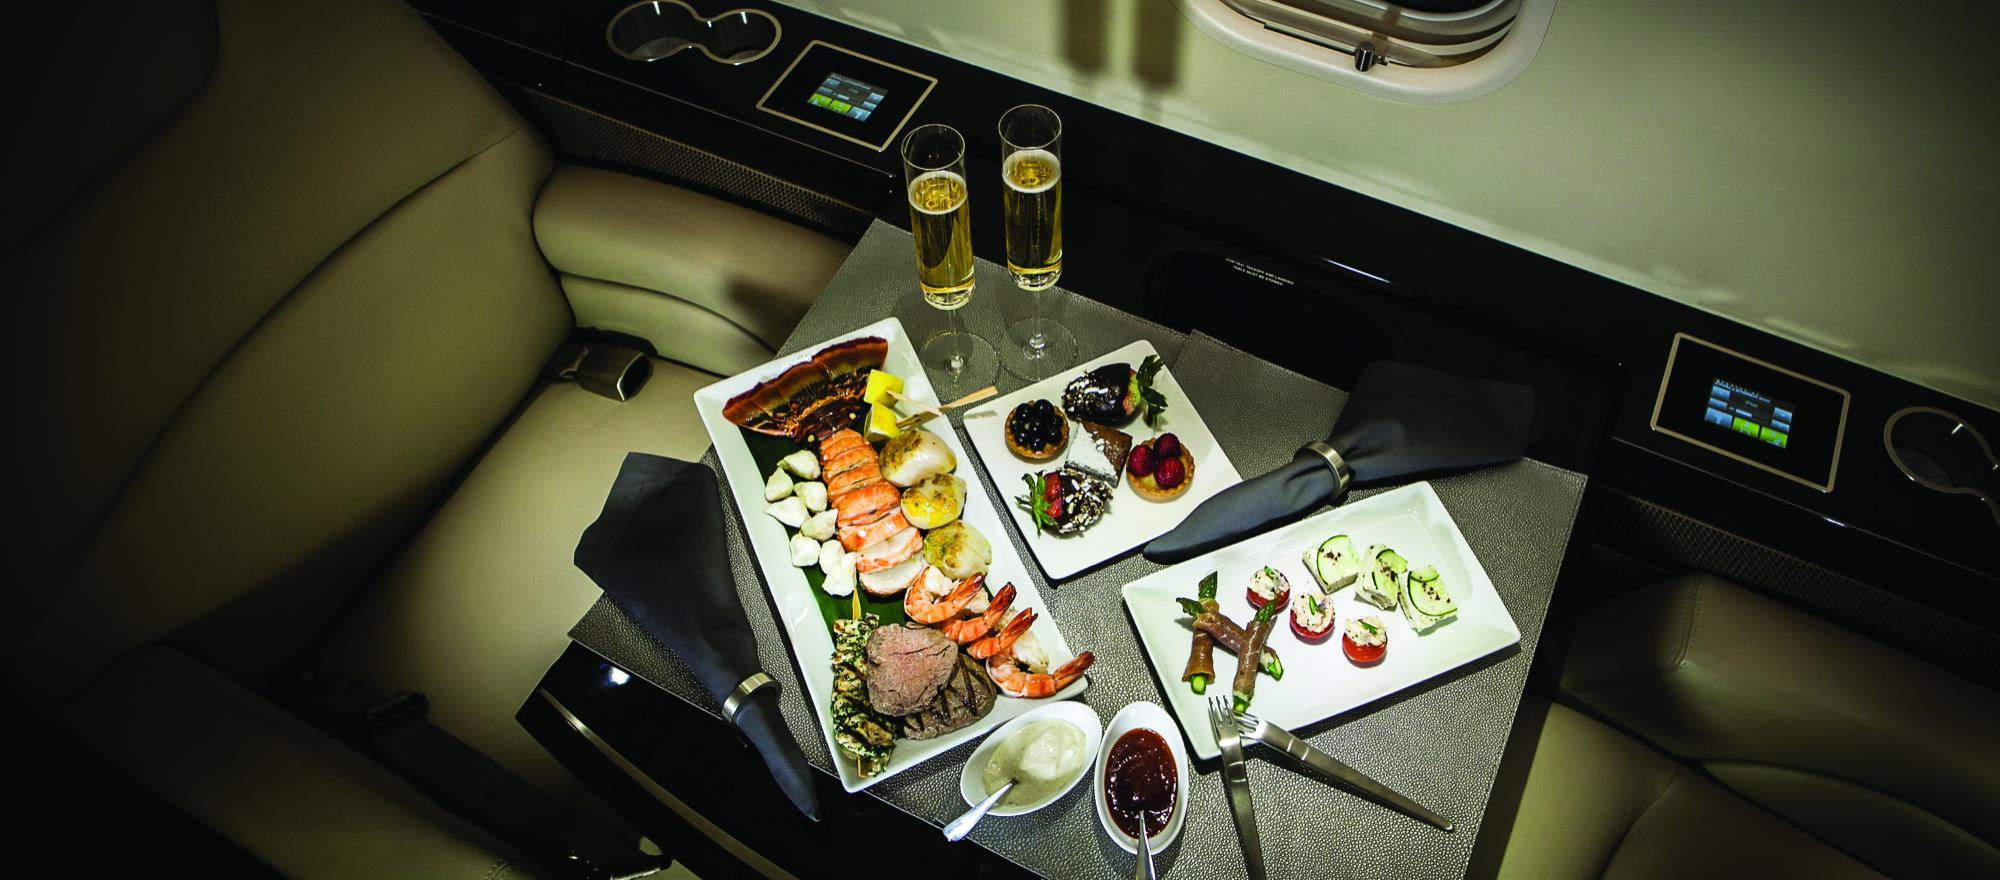 Food offerings from business aviation caterers mirror those found at top gourmet restaurants, but simpler fare such as burgers and sandwiches are also common. (Photo: Cunningham Photo Artists/Chef Charles Catering)